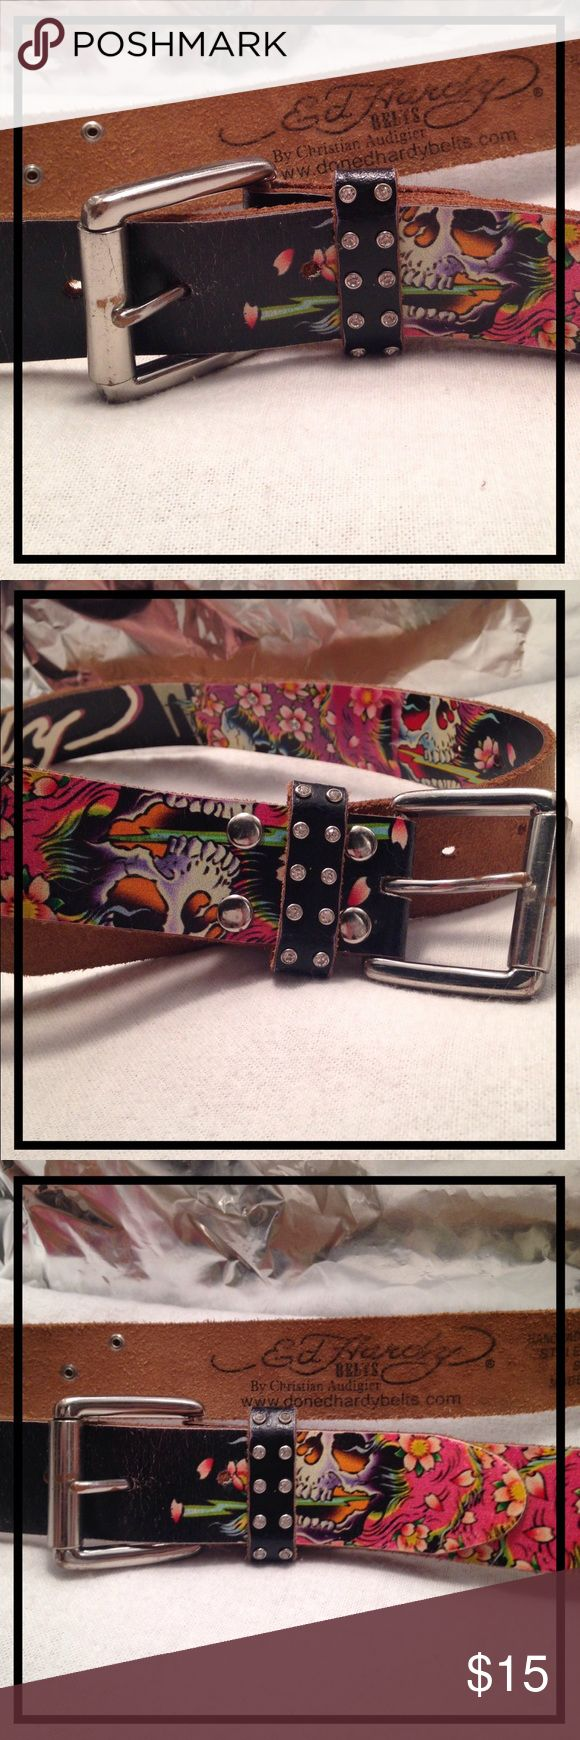 GENUINE LEATHER ED HARDY BELT | CHRISTIAN AUDIGIER ☠🌹 ED HARDY GENUINE LEATHER BELT 🌹☠  By Christian Audigier.  🌹🌵 Love-Worn 🌵🌹 🌹Size: S (Strap measures: 48inches, Buckle measures: 2 inches, 50in. Total) 🌹Color: Black w/ skulls & flowers 🌹Circa: 2008-2012   In good condition. Has white crazing spidering on black parts of belt in places, but it actually blends. No rips, tears, or scratches present. The belt has been in the Arizona environment its whole life & shows the signs of low…